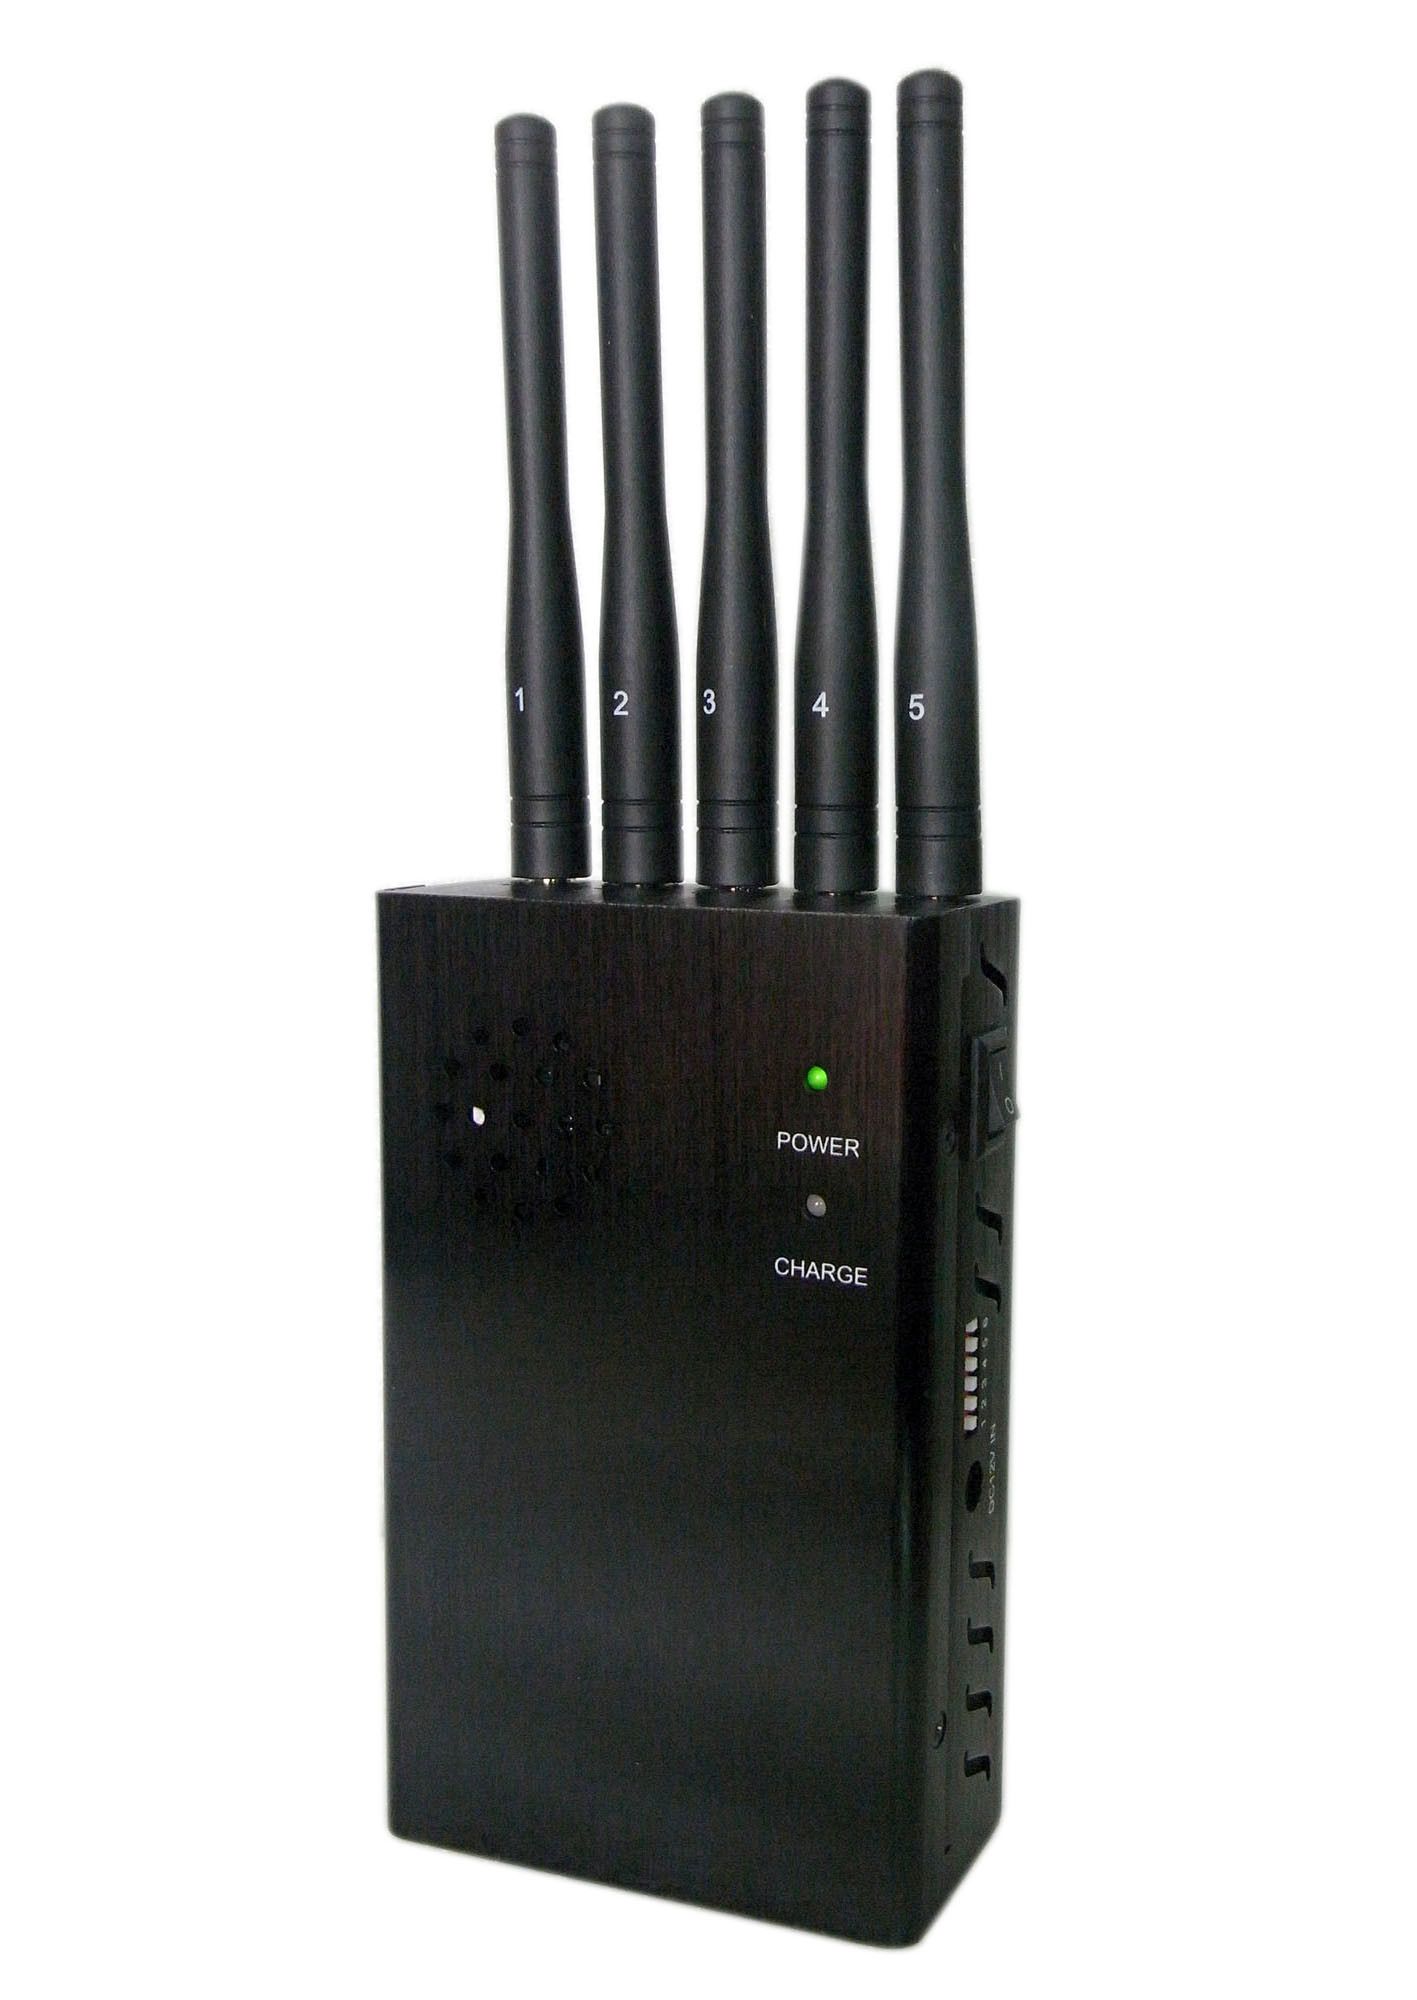 mobile phone jammer aliexpress - China Portable 5 Antennas for All Cellular, GPS, Lojack, Alarm Jammer System, Portable Five Antenna for All Signal Jammer System, Cell Phone Jammers - China 5 Band Signal Blockers, Five Antennas Jammers